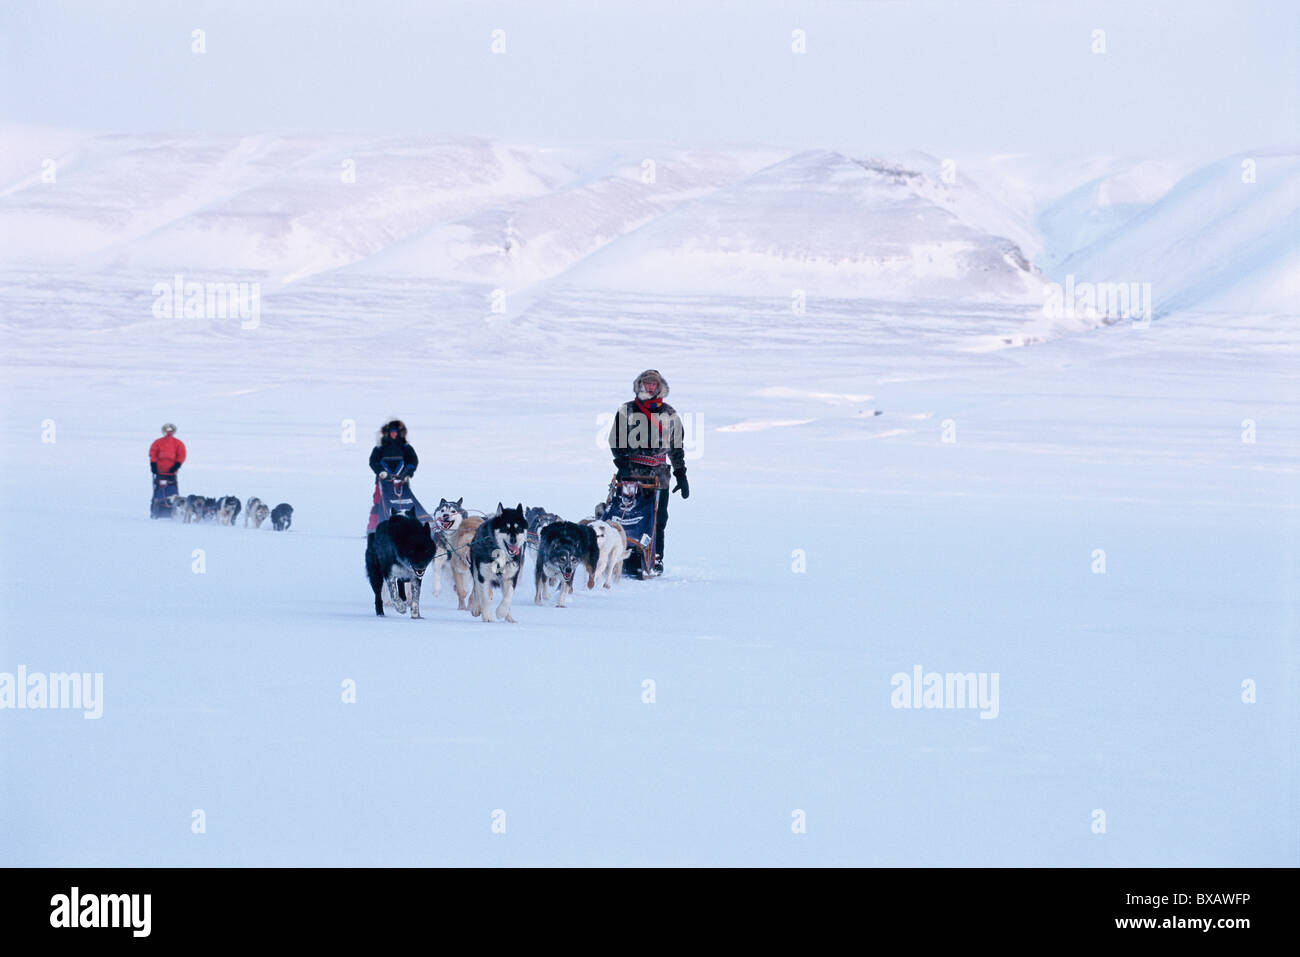 Dogs relay in winter scenery - Stock Image